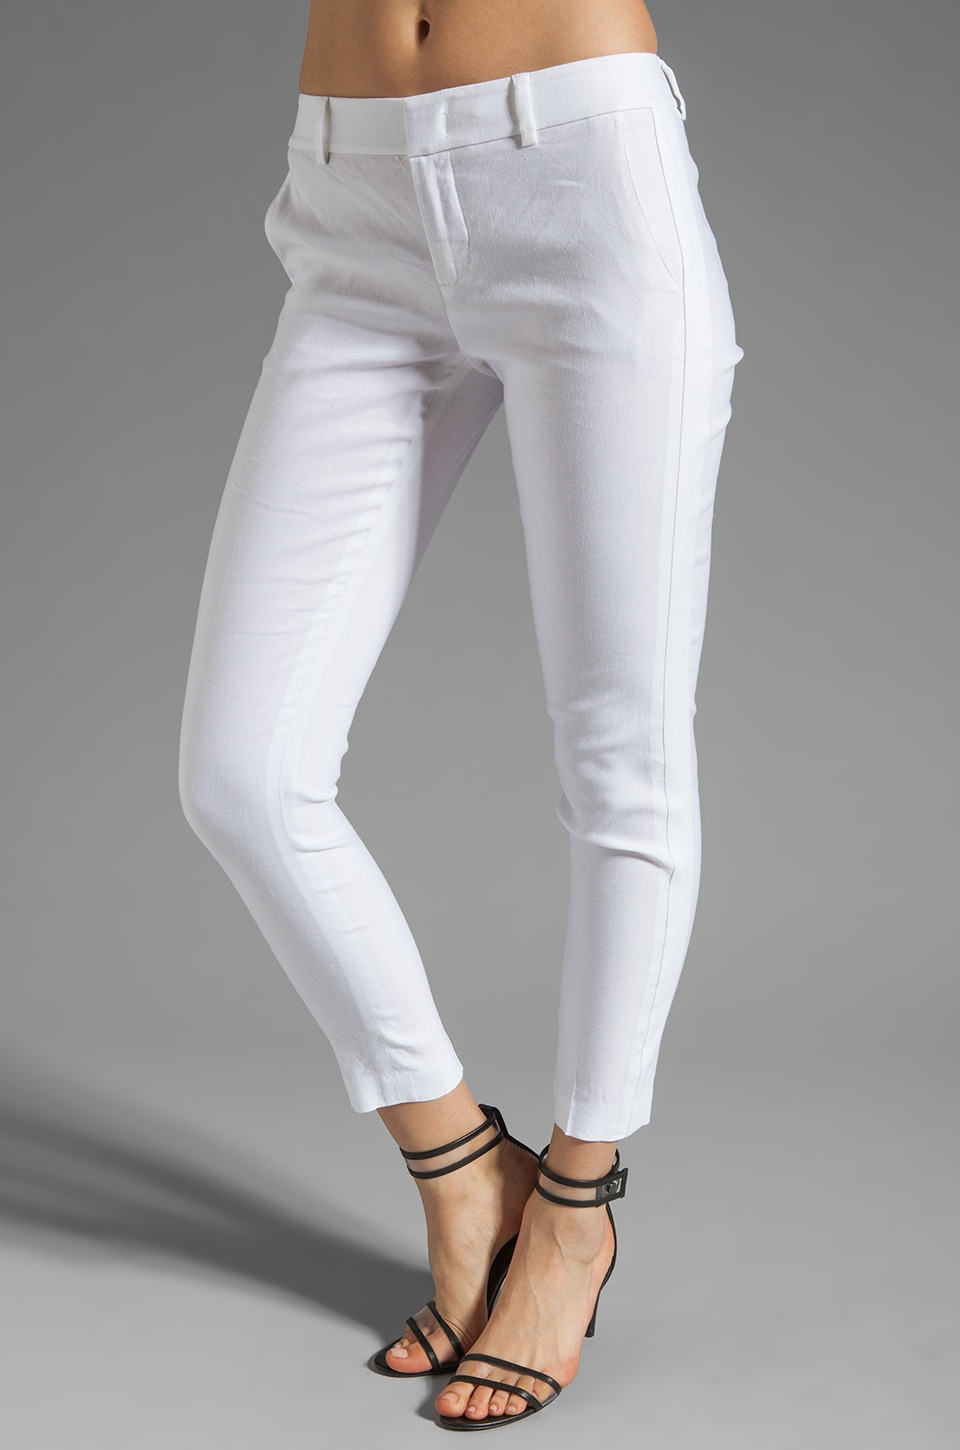 Vince Linen Sportswear Solid Strapping Pant in White